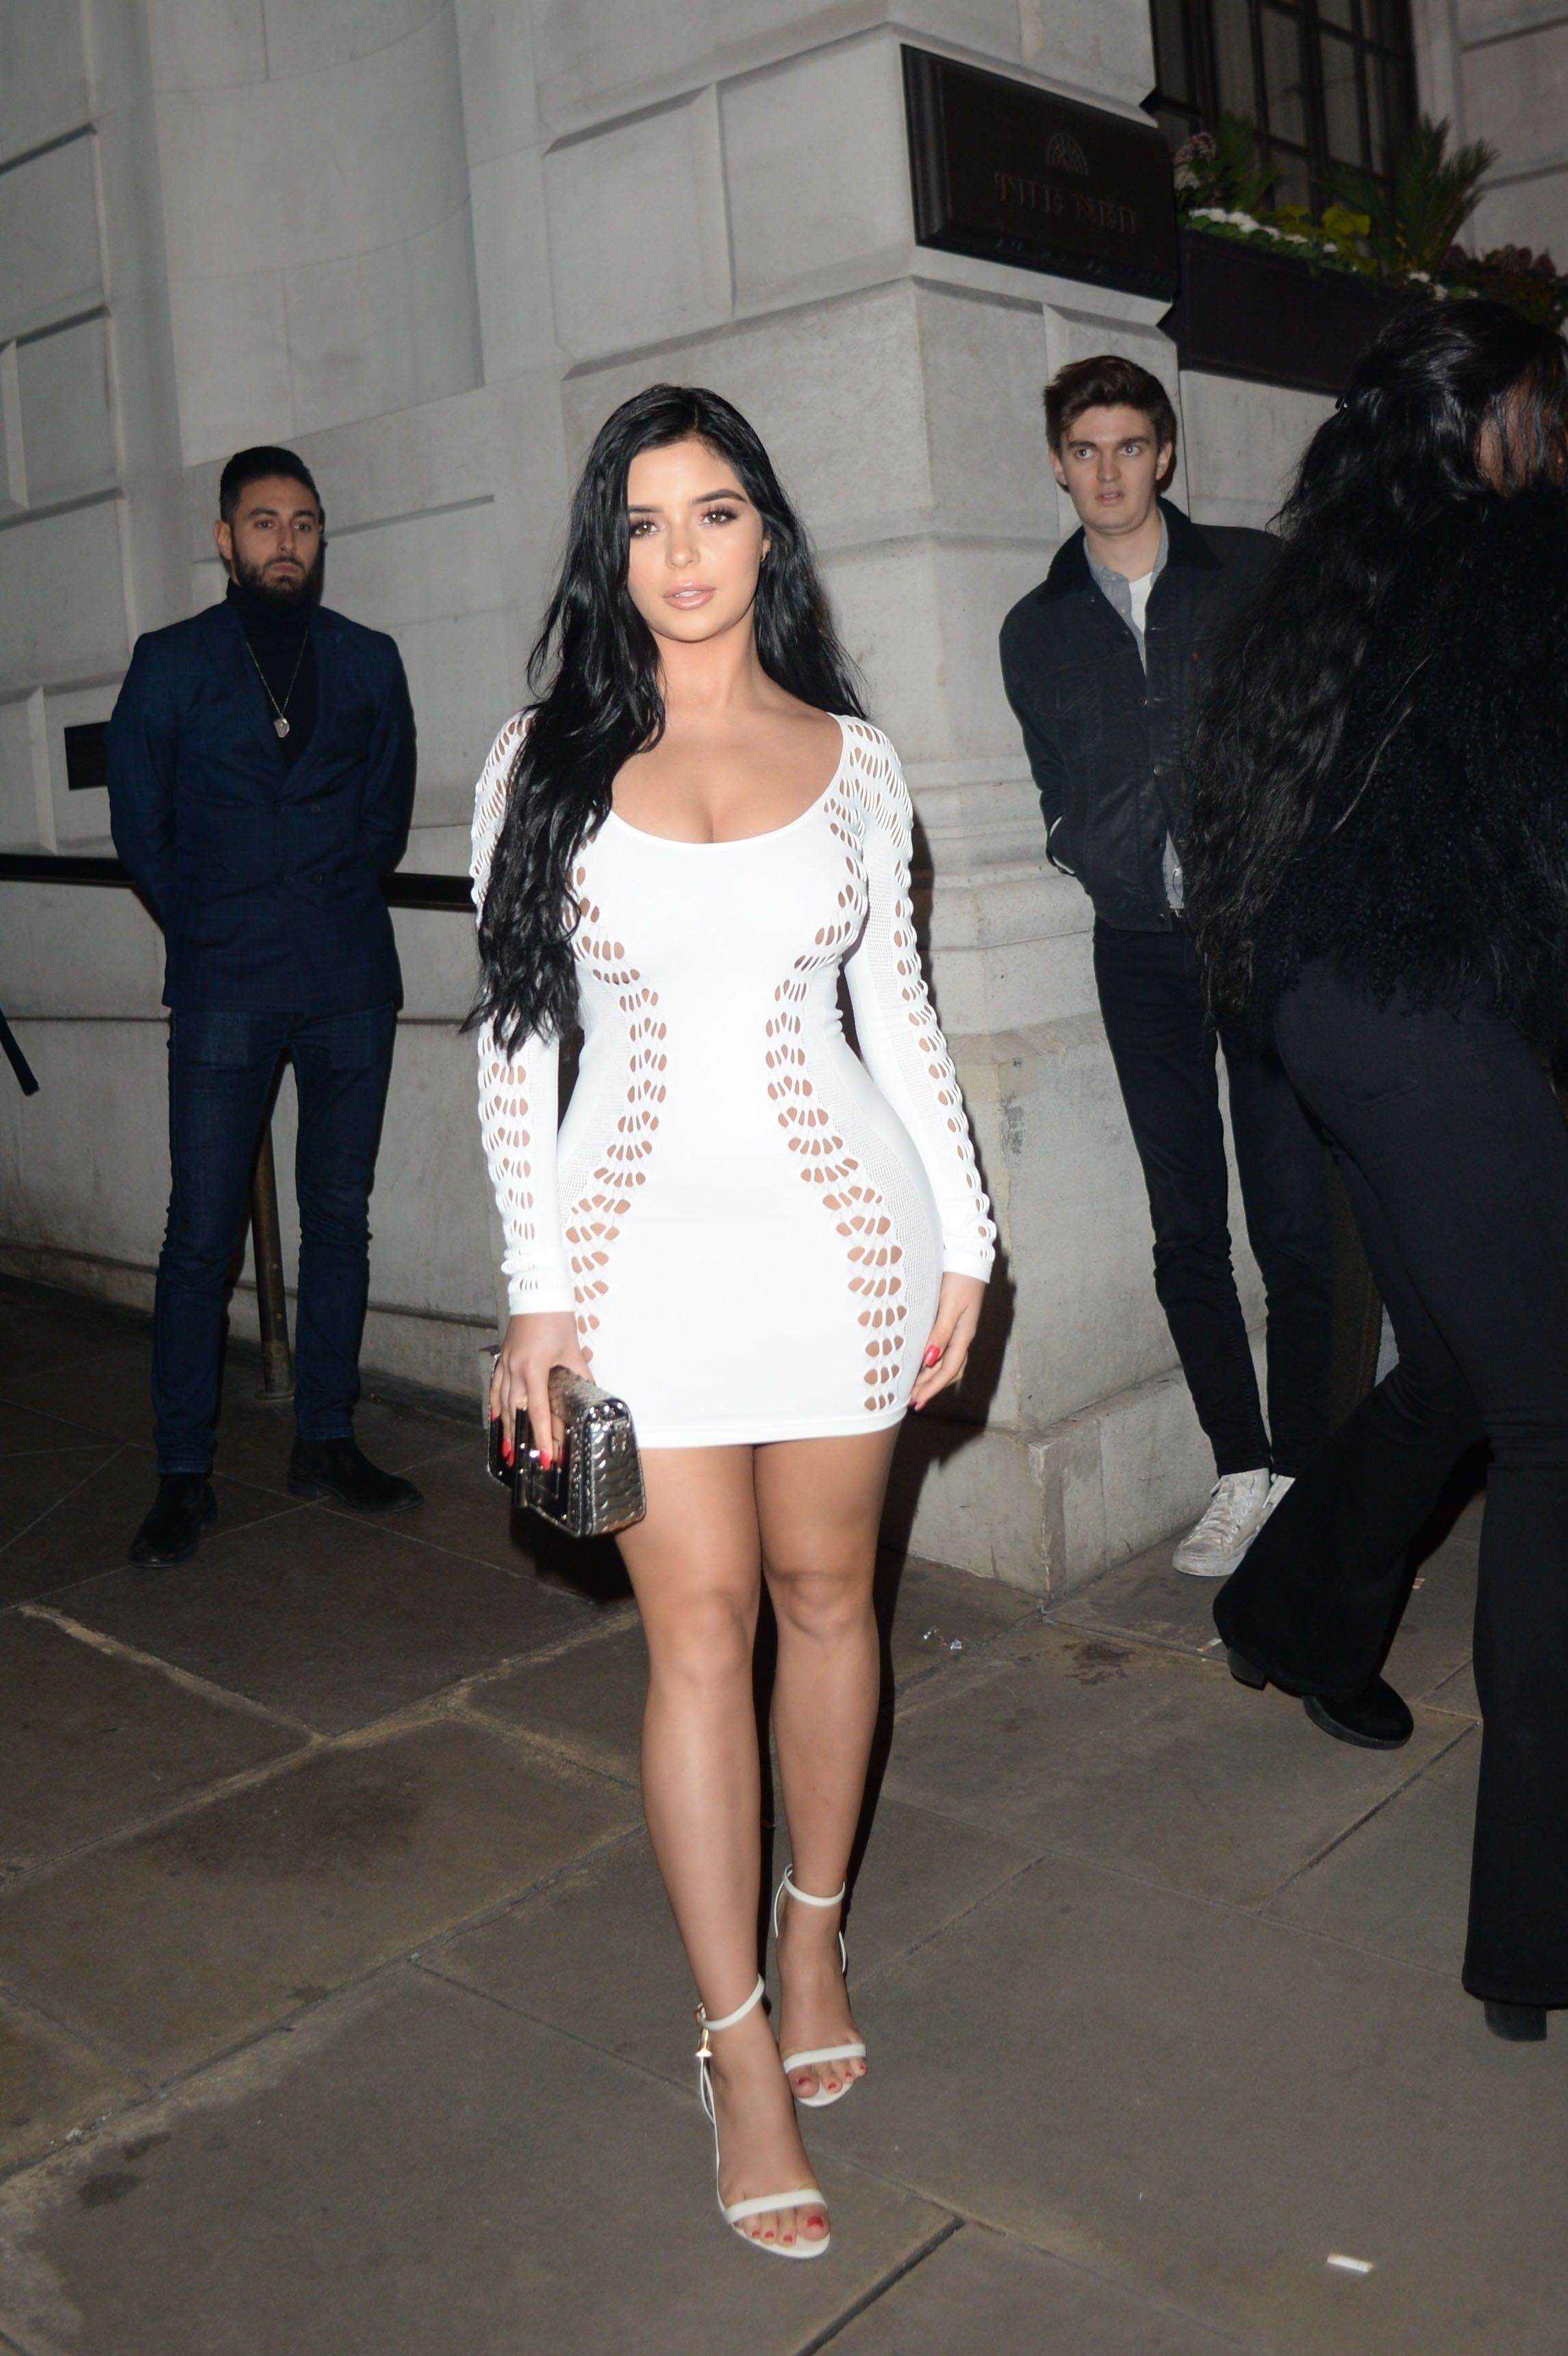 Demi Rose – Attending at Wonderland Magazine x MTV Party in London   Indian Girls Villa - Celebs Beauty, Fashion and Entertainment